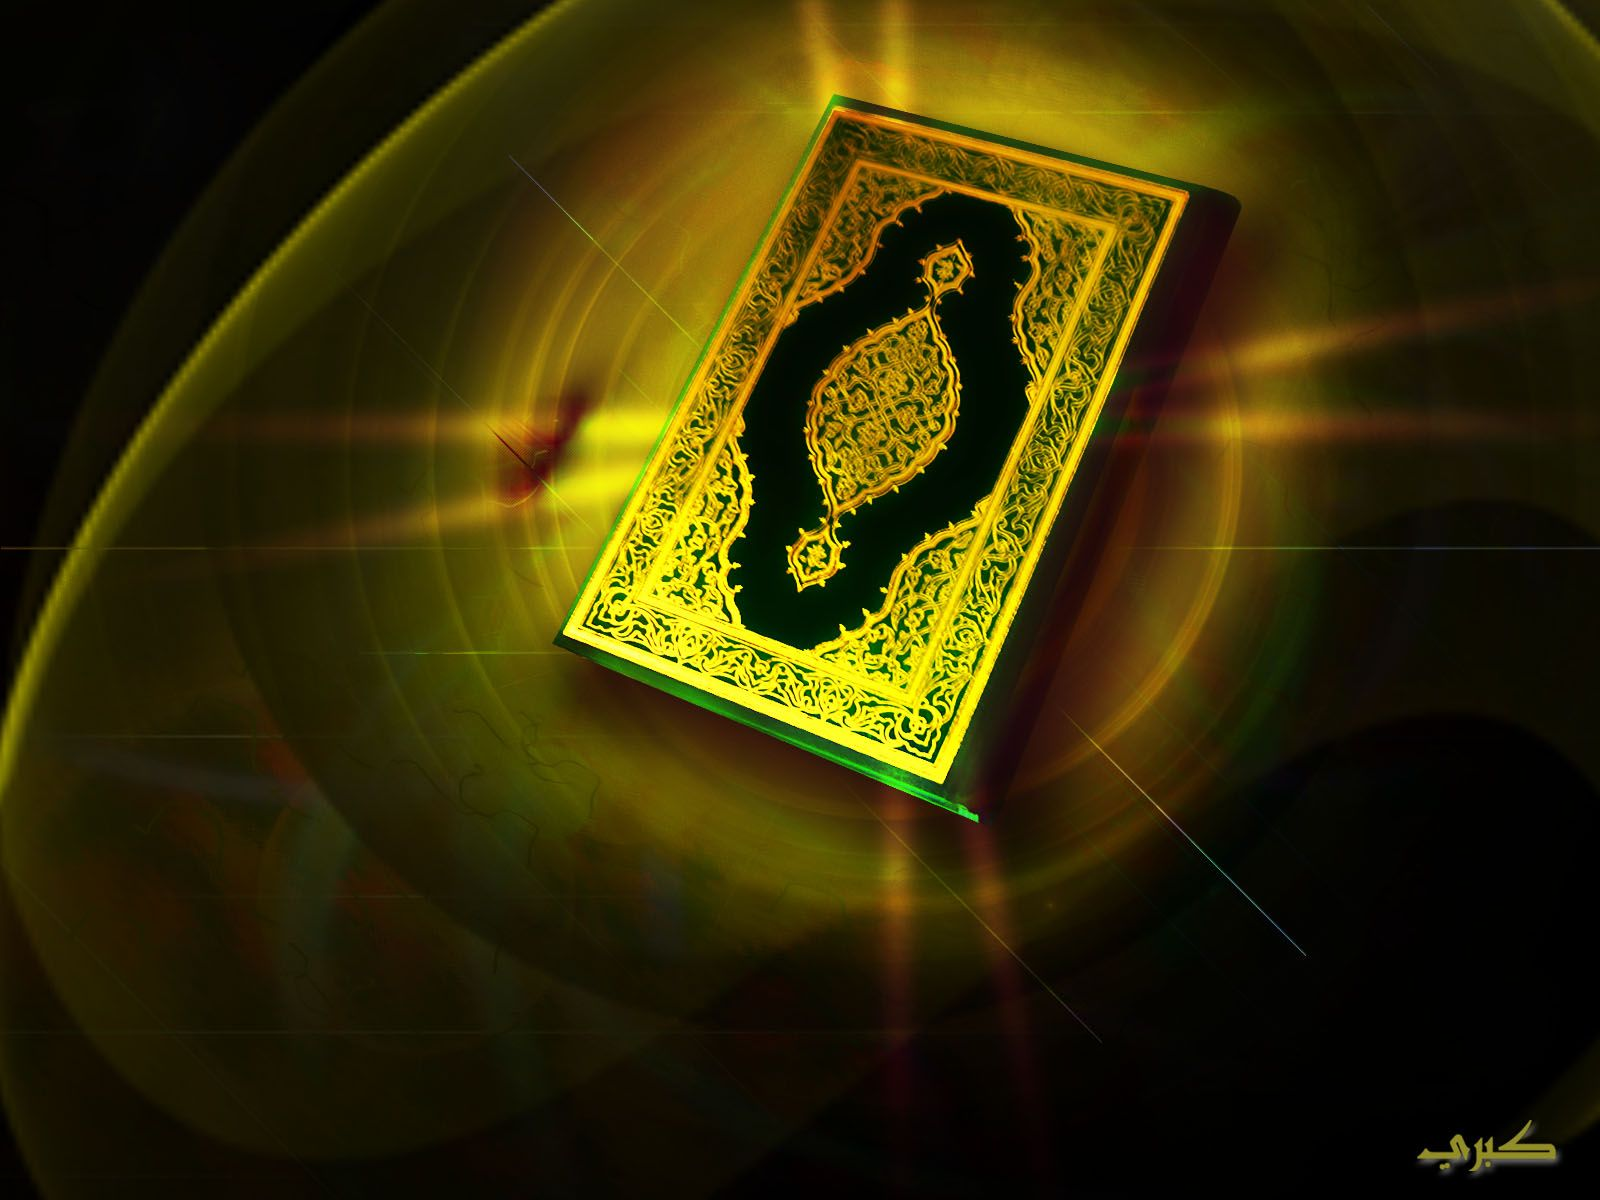 Allah Name with D Quran One HD Wallpaper Pictures Backgrounds 516×558 Quran Wallpaper (29 ...